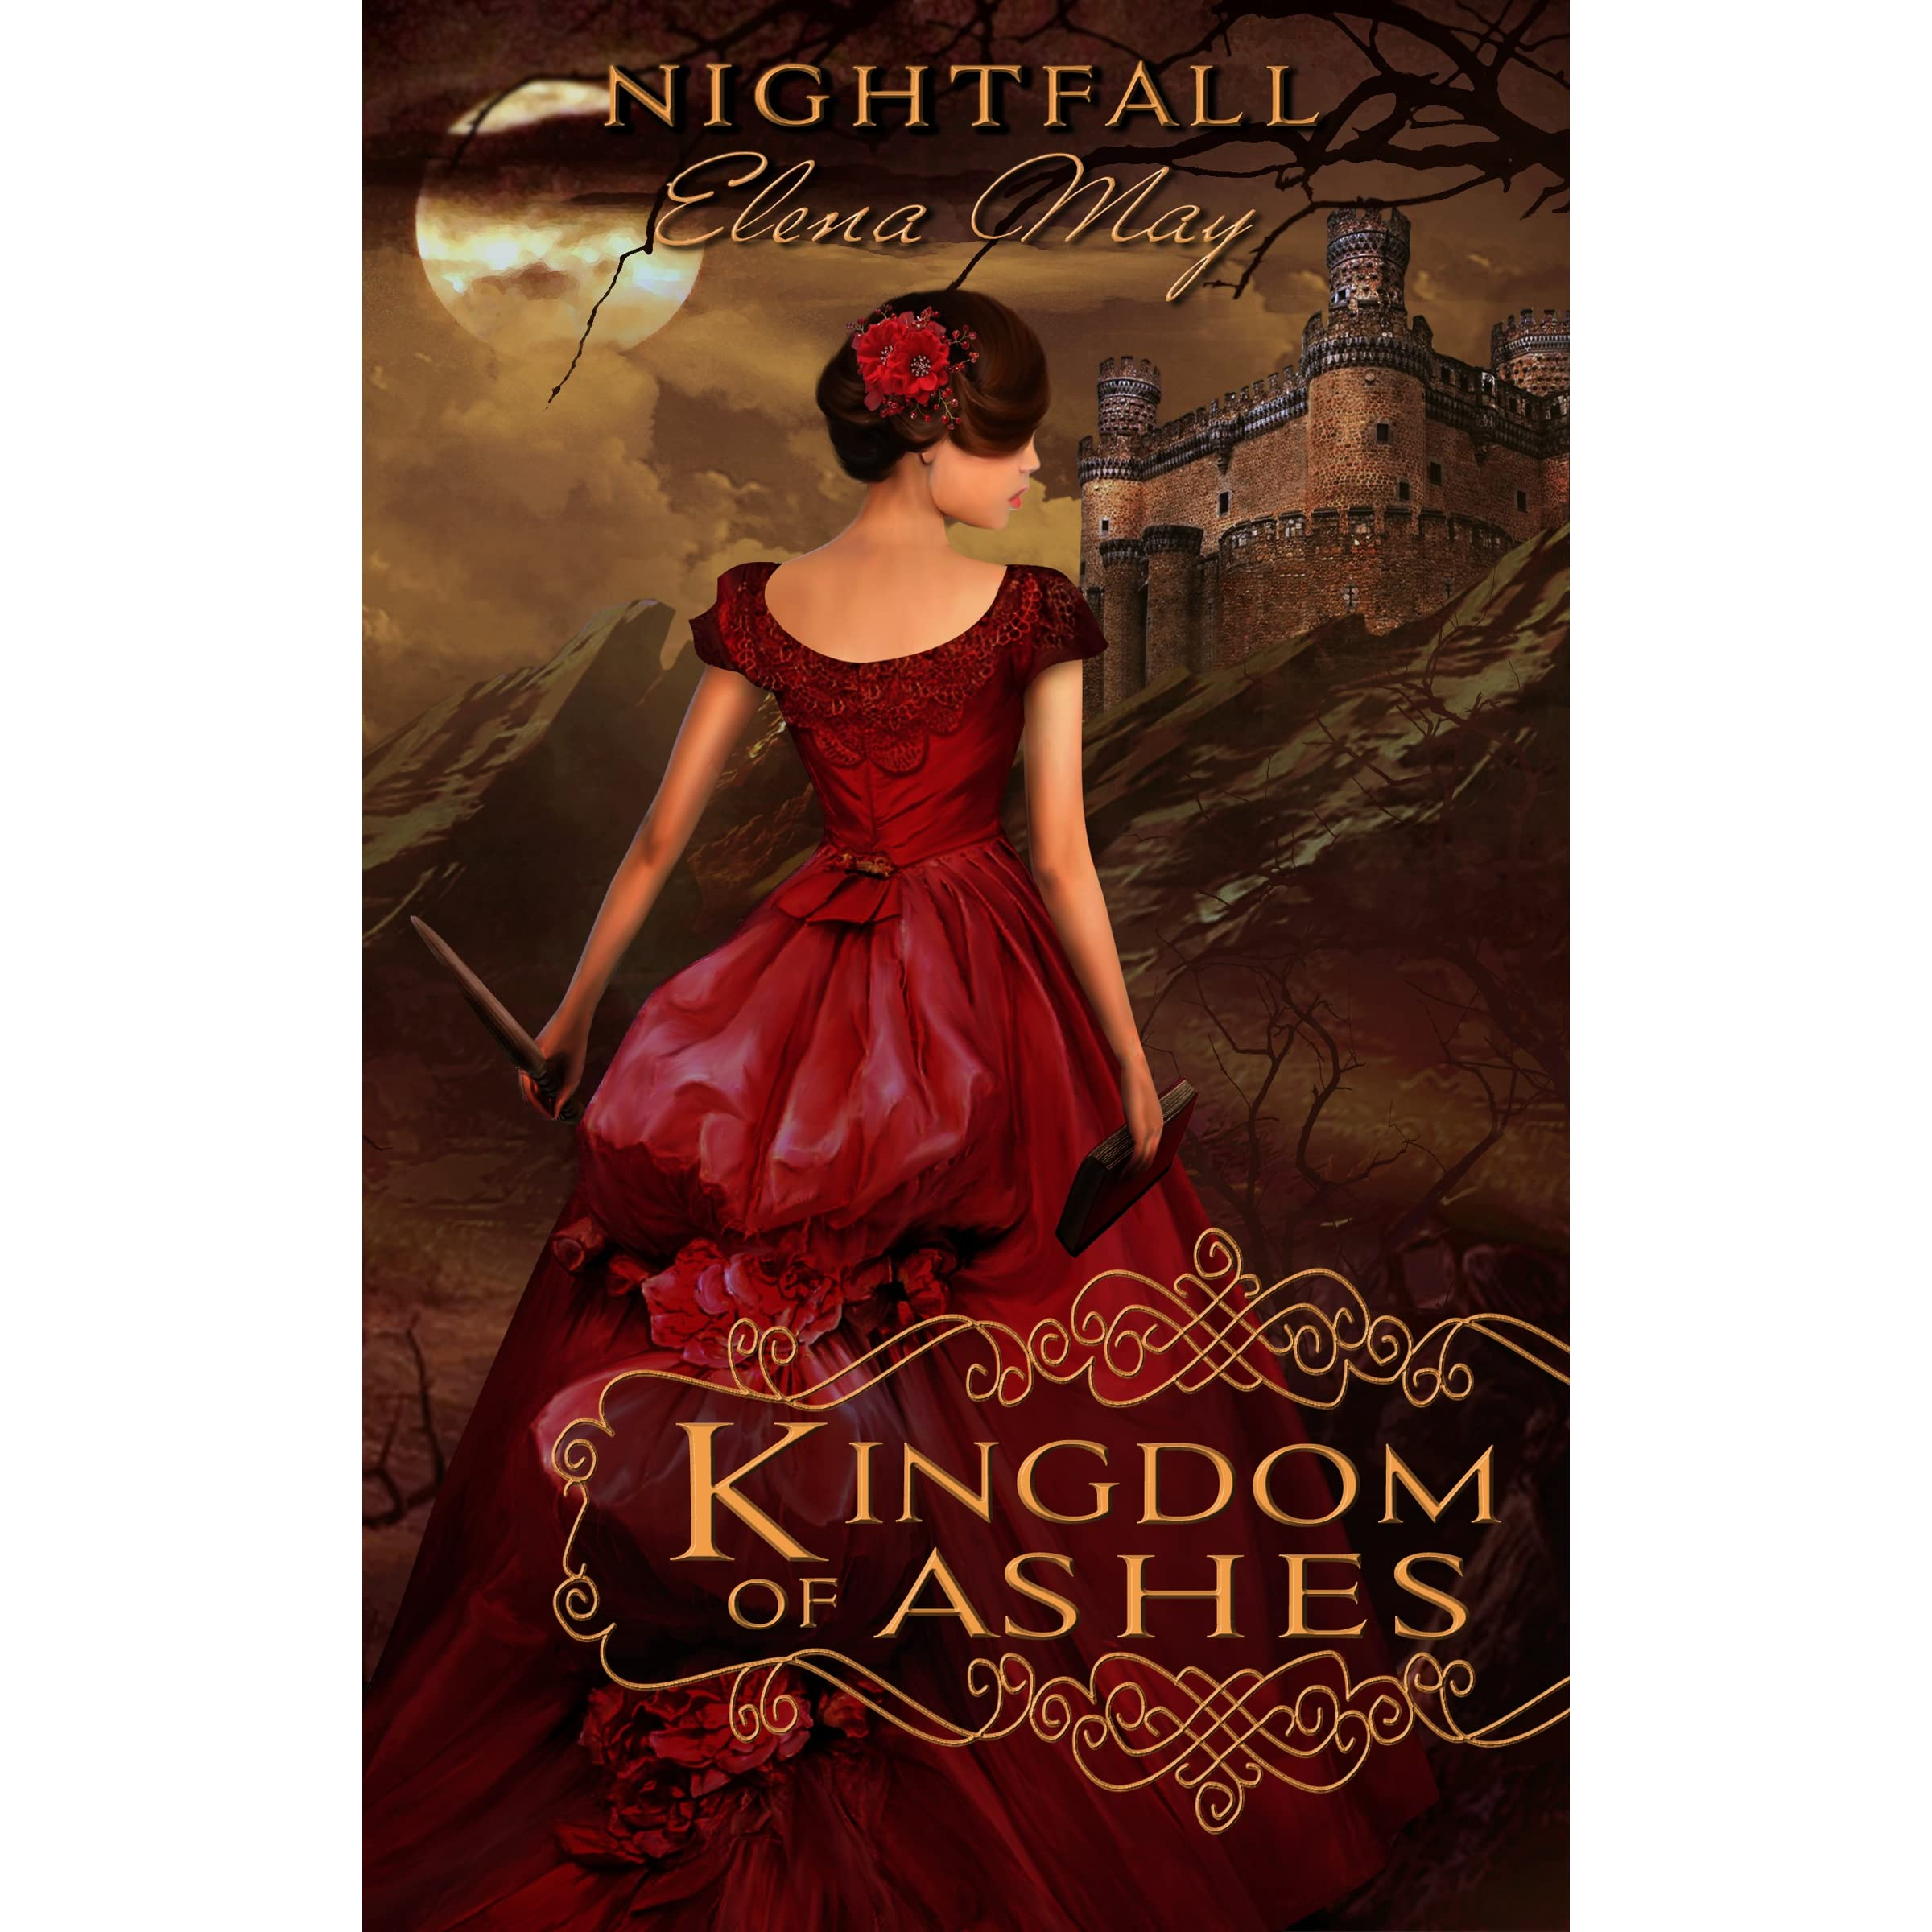 Kingdom Manga Goodreads: Kingdom Of Ashes (Nightfall, #1) By Elena May